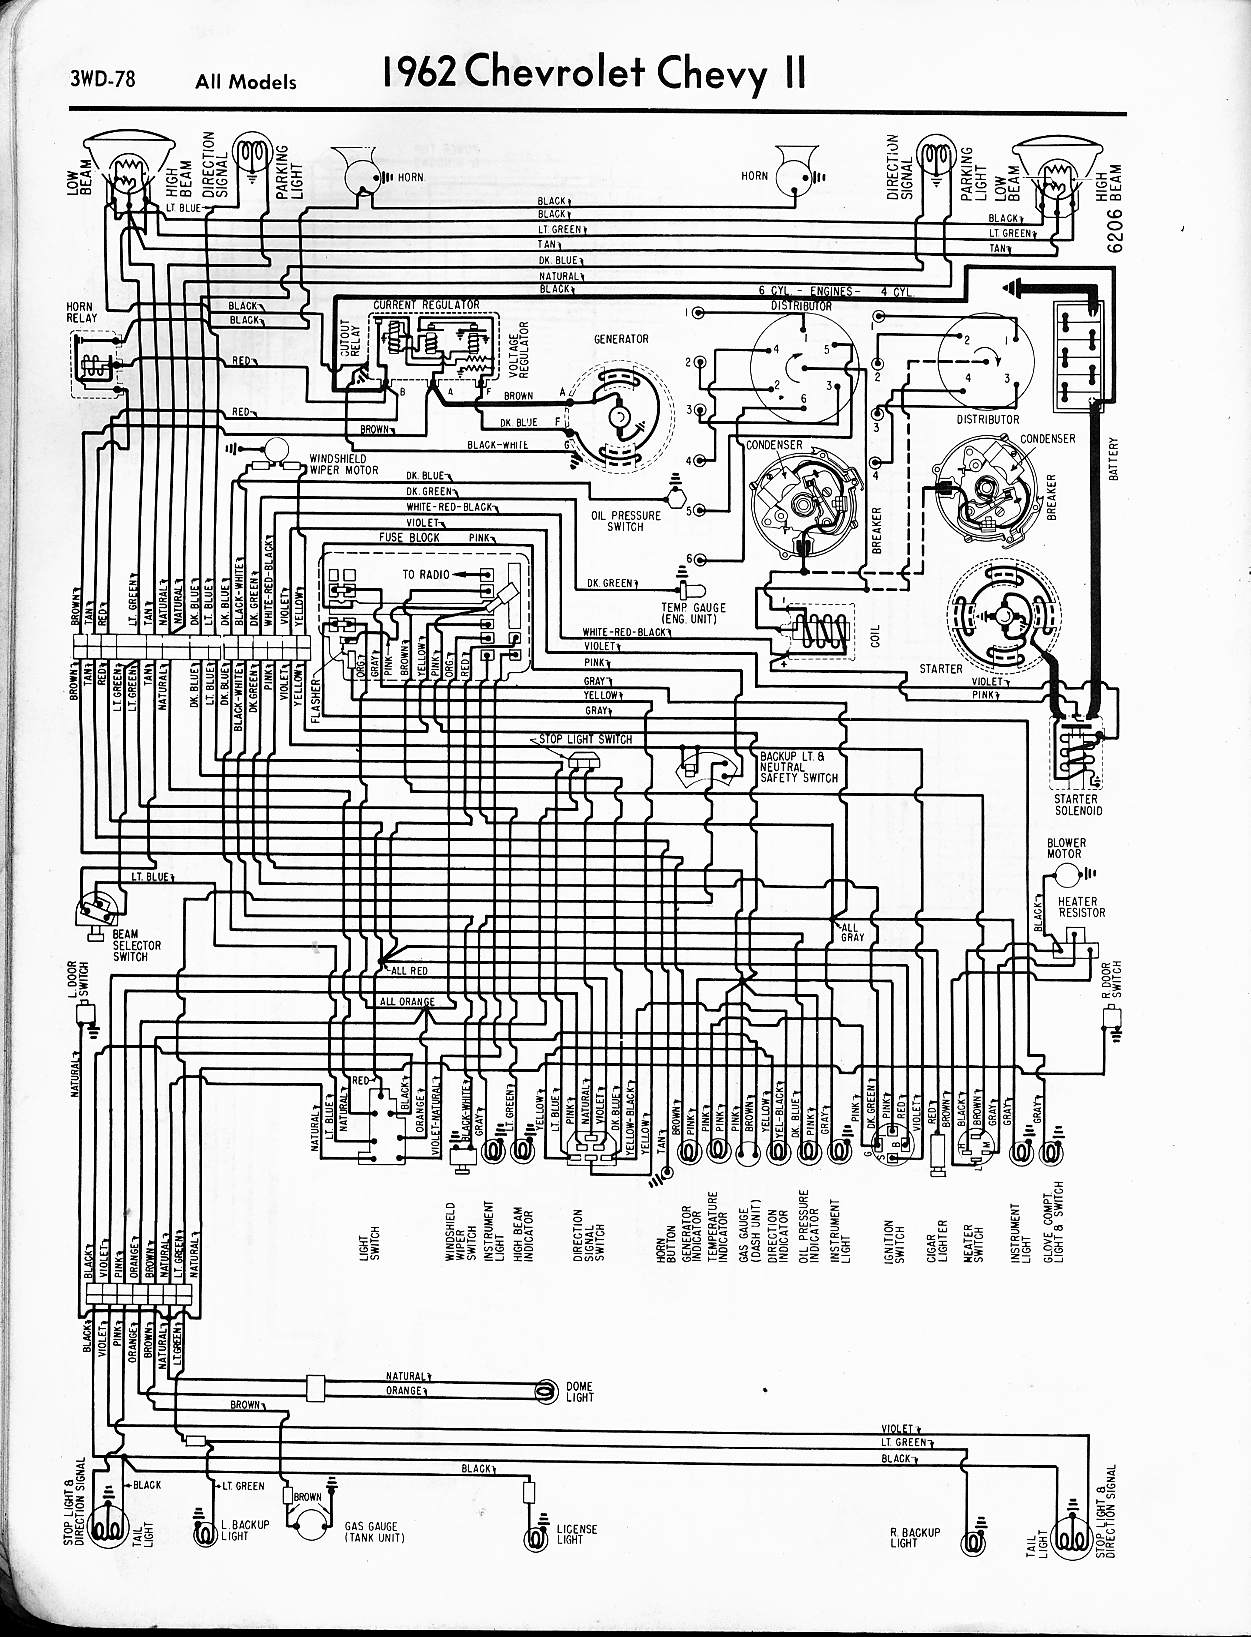 MWireChev62_3WD 078 1968 impala wiring diagram 1975 impala wiring diagram \u2022 wiring 1966 nova wiring diagram at eliteediting.co